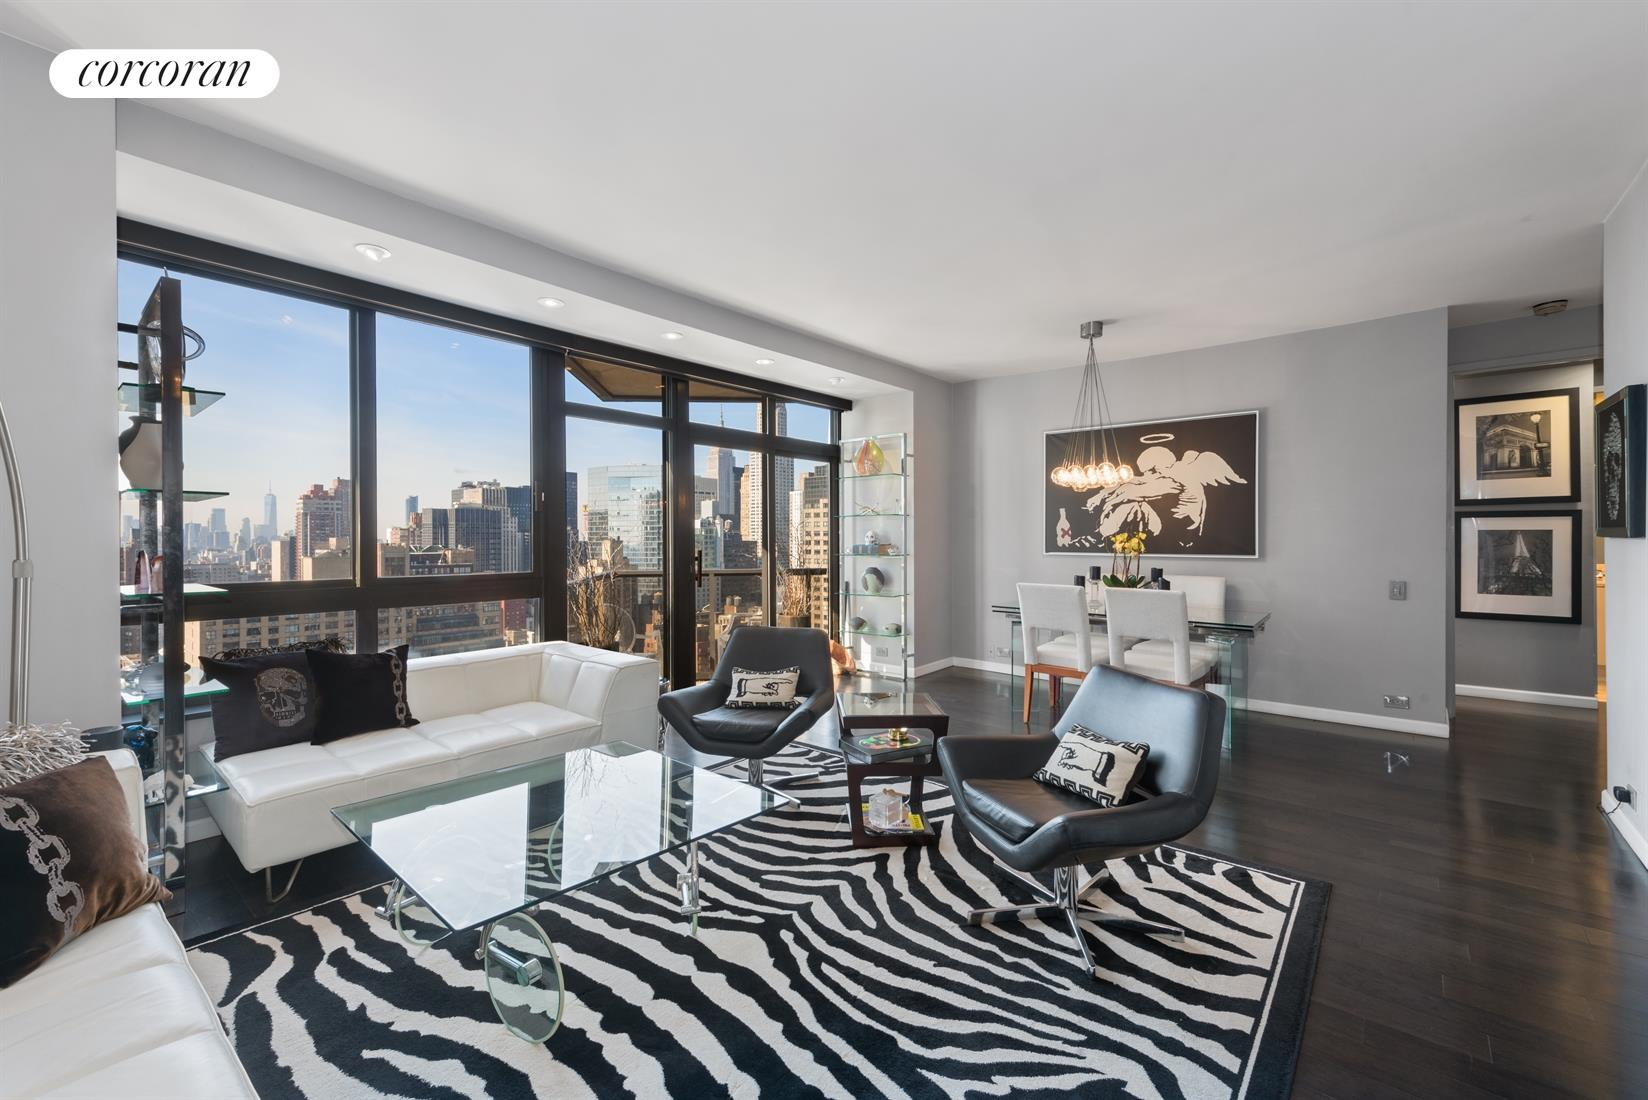 Find out why people love to live at 100 United Nations Plaza!Triple Mint Designer Renovated South facing 2 bedroom 2  bath apartment available for sale at 100 United Nations Plaza - one of Manhattan's premier white glove condominiums. Spectacular Manhattan skyline views from every room of this amazing space that includes the Empire State Building, Chrysler Building, new World Trade center, the East river and much much more.Entertain in style in the living room/dinning room that has a wall of windows, recessed lighting, a custom built in and its own balcony.  Beautiful Wood Floors.  Marble powder room too.Beautifully renovated kitchen with lacquer cabinets and stainless steel appliances.Super large master bedroom suite with a large ensuite marble bathroom that has a Jacuzzi tub and stall shower.  Custom closets galore. The master bedroom has a balcony as well.A split bedroom layout - the second bedroom also has an ensuite bathroom.   9 foot ceilings  oversized windows  two balconies - out of this world views from every room  amazing light - fantastic closet space  beautiful wood floors  split bedroom layout.  Pets Allowed (1 Dog - Maximum weight 50 pounds). Shown by Private Appointment.Located on East 48th Street and First Avenue in Manhattans great Turtle Bay neighborhood - 100 United Nations Plaza has an amazing staff, 24 hour doorman, valet and concierge service, beautiful renovated lobby, on-site management office, renovated meeting room/party room , beautifully landscaped gardens with waterfalls, laundry room, a residents only fitness center and an attached 24 hour attended garage. Conveniently located to transportation and many great restaurants and shops.